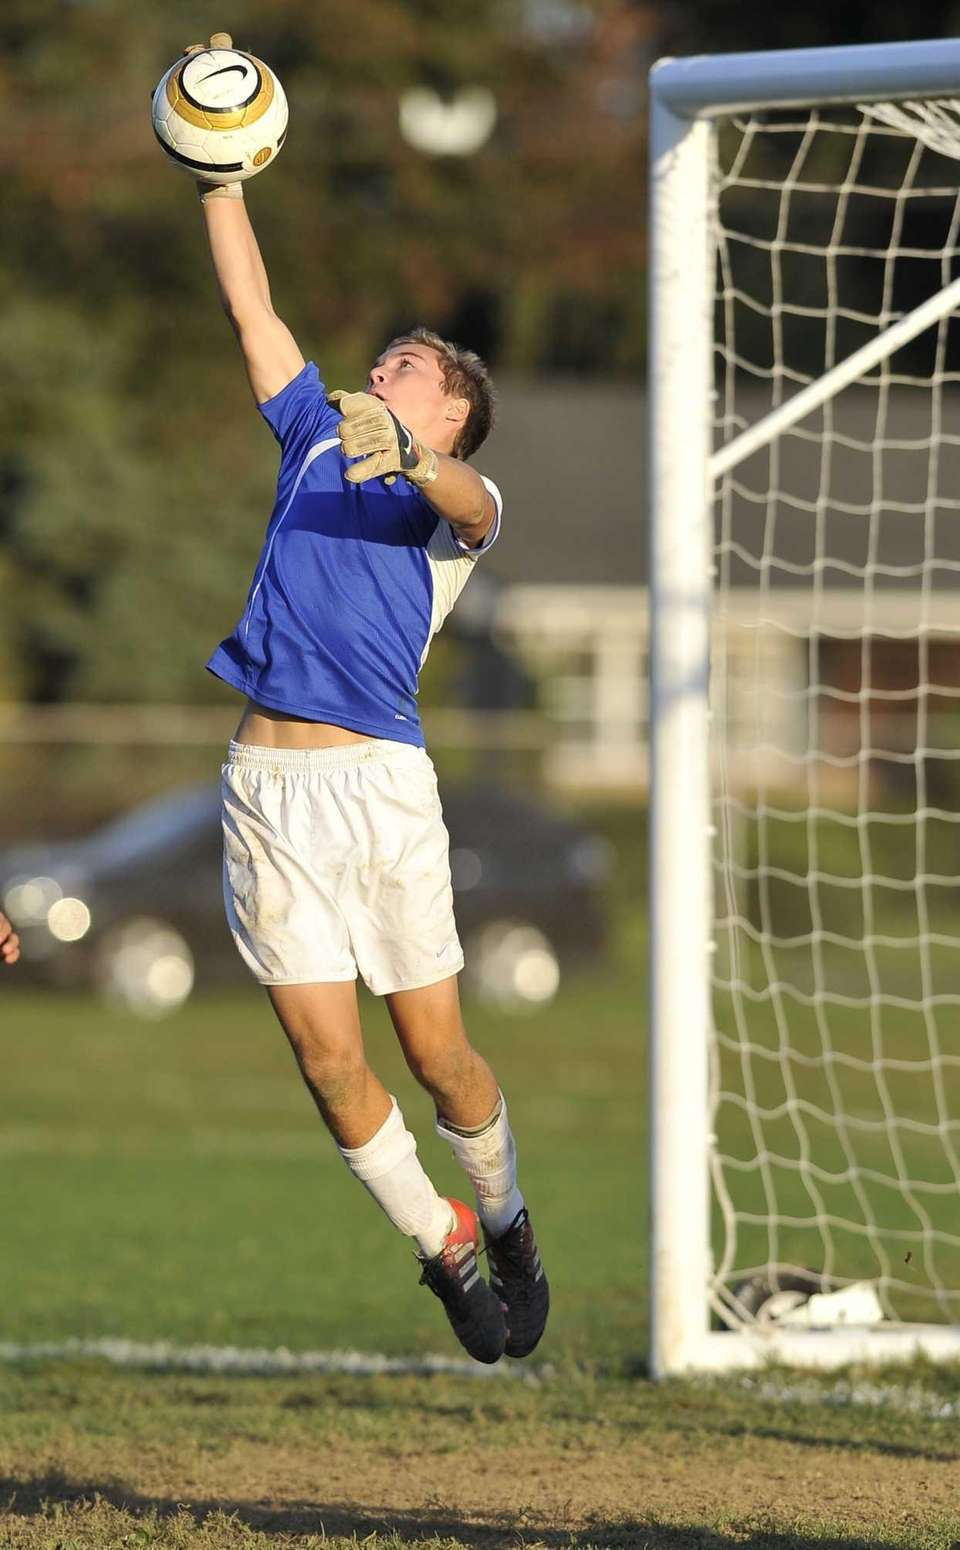 East Hampton goalkeeper Nick Tulp makes a save.